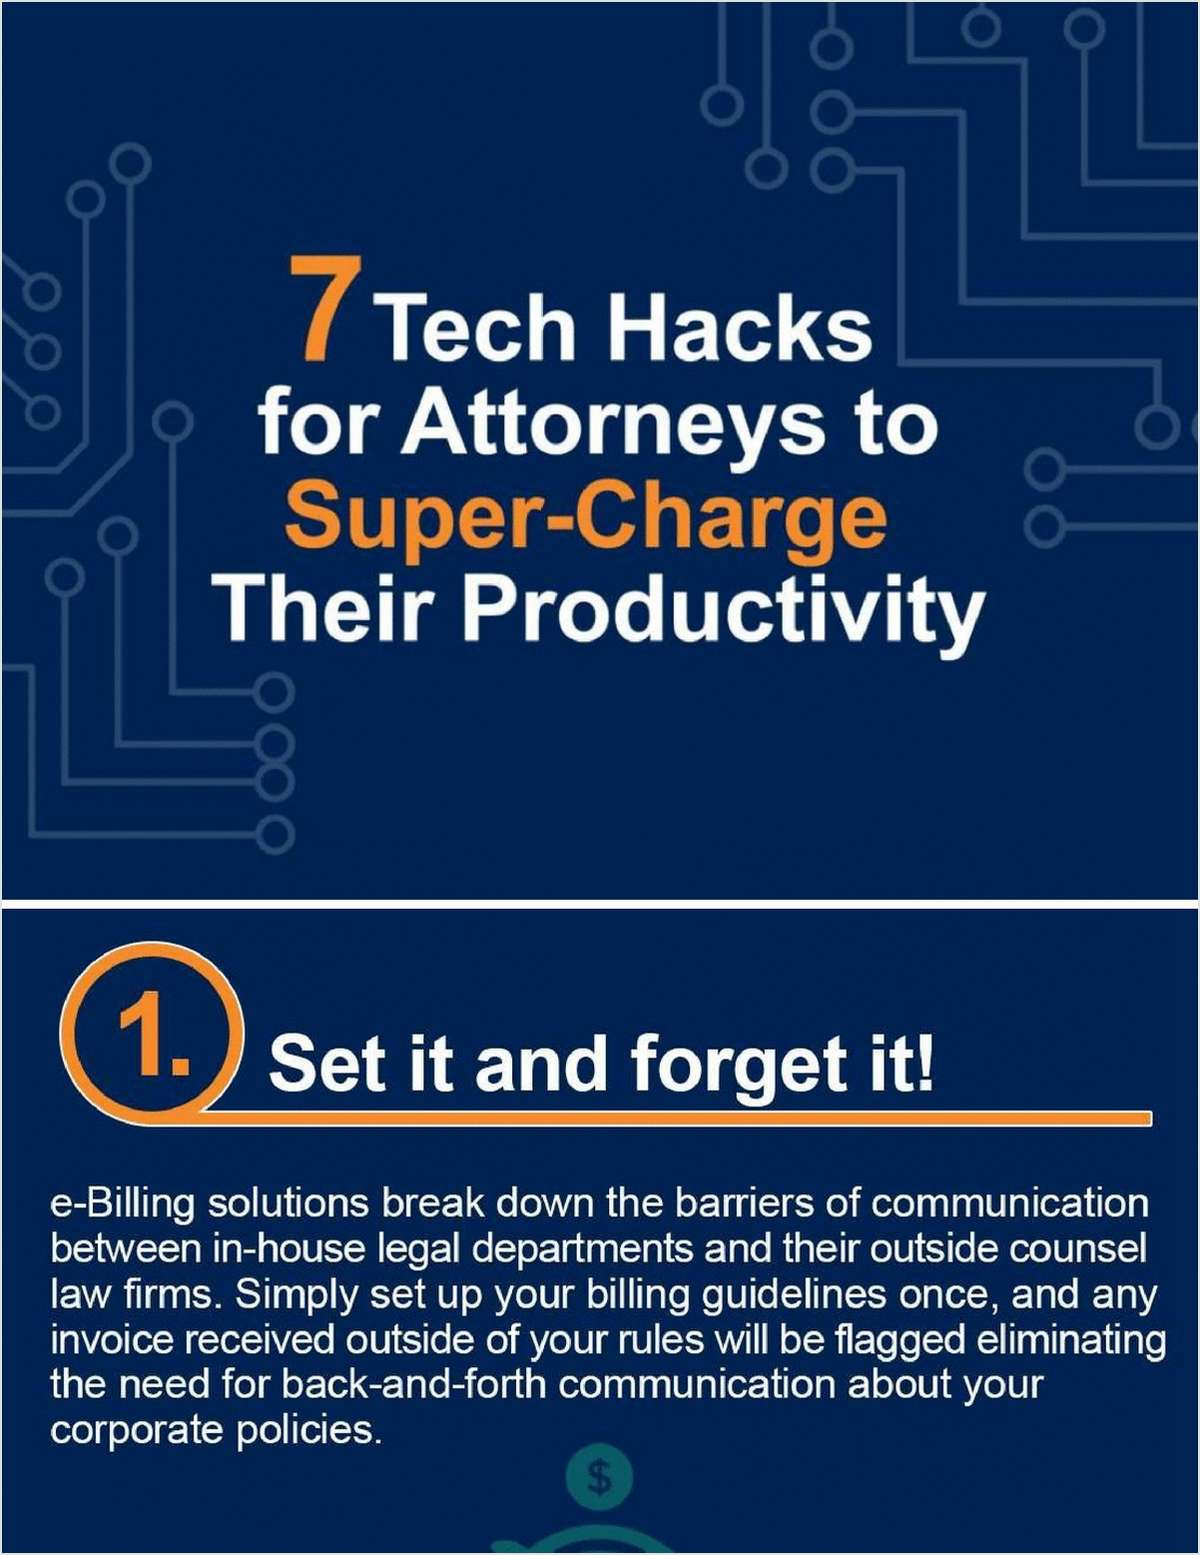 Tech Hacks for Attorneys to Super-Charge Their Productivity